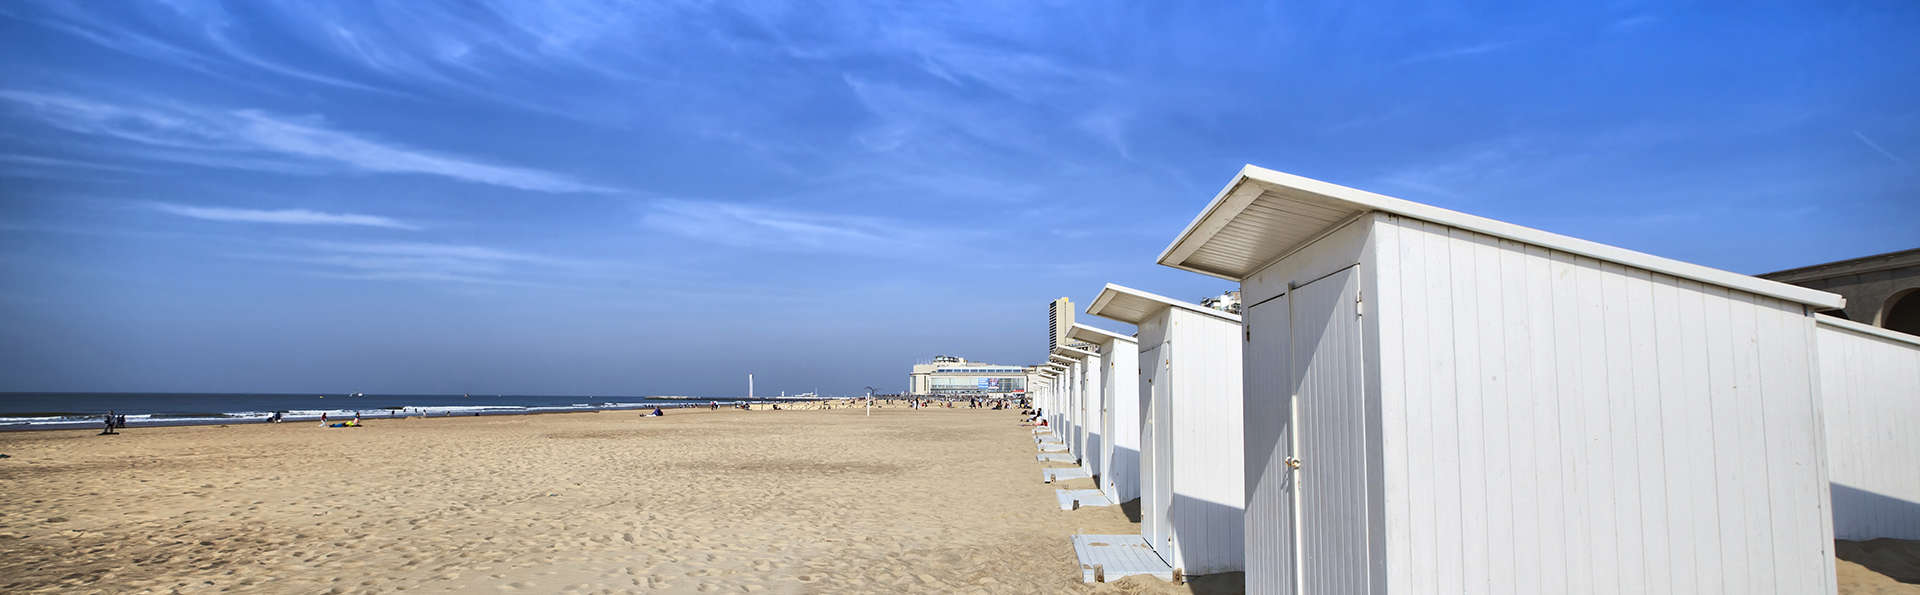 Avenue Beach Hotel - Edit_Oostende3.jpg